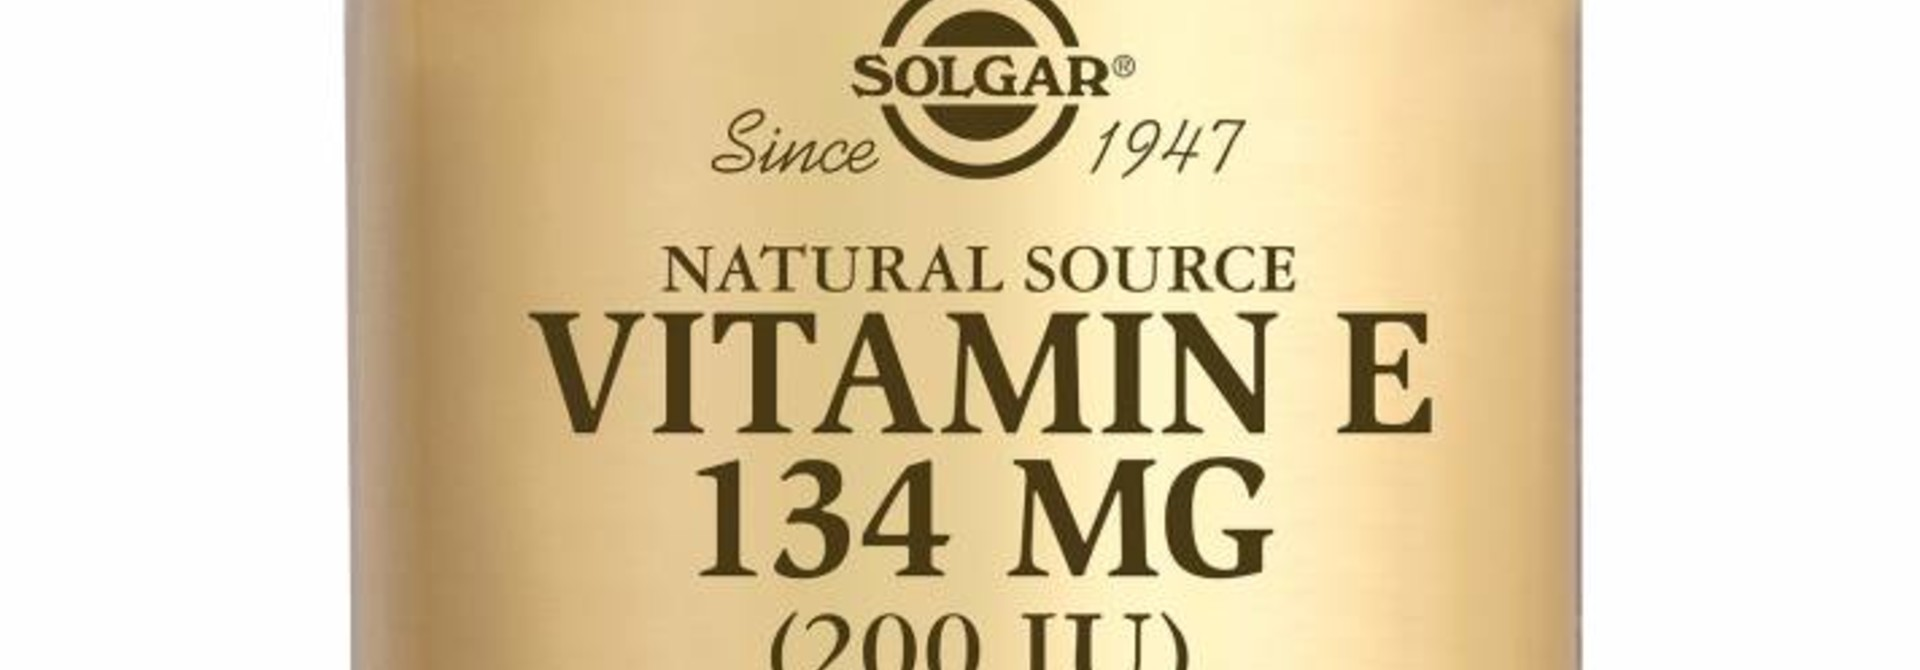 Vitamin E 134 mg/200 IU Complex 50 softgels